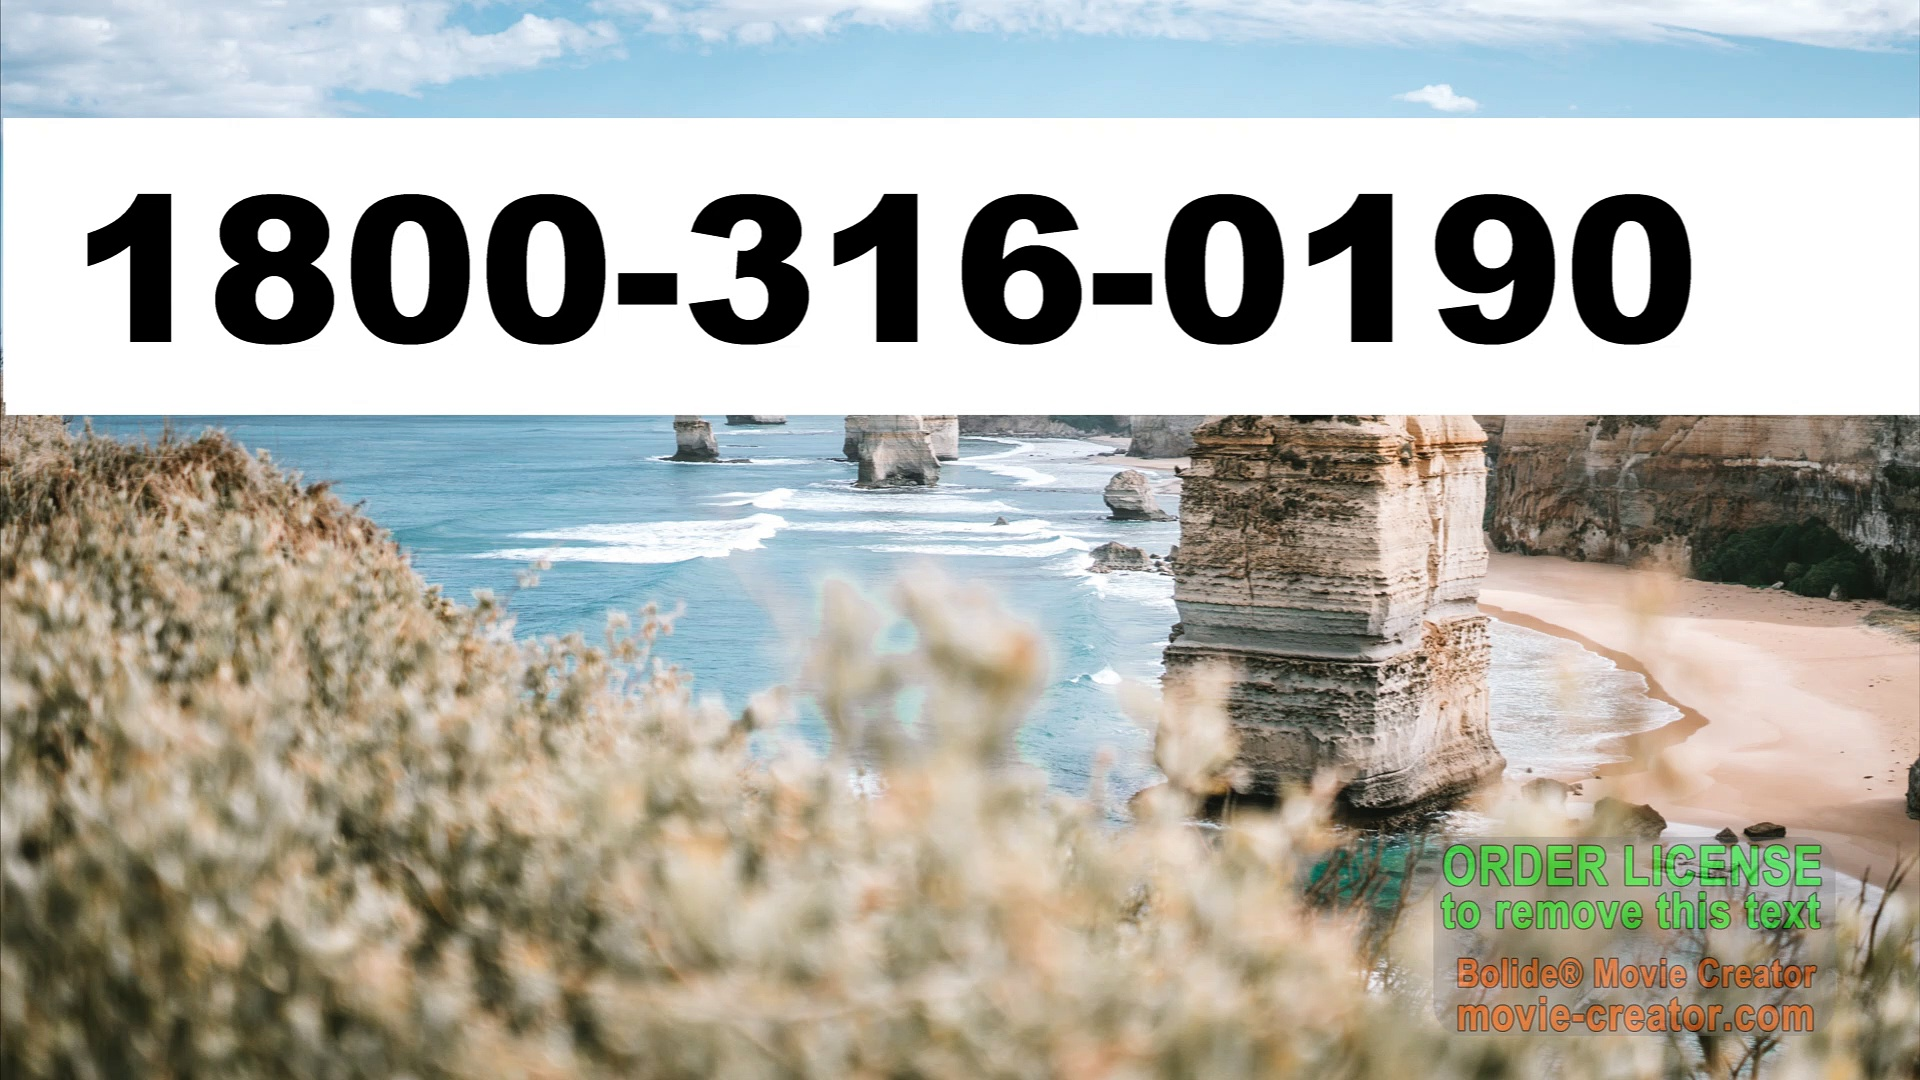 Toll free Roadrunner Tech Support Phone Number ☎+1-(800)-316-0190 Roadrunner Tech Support Number